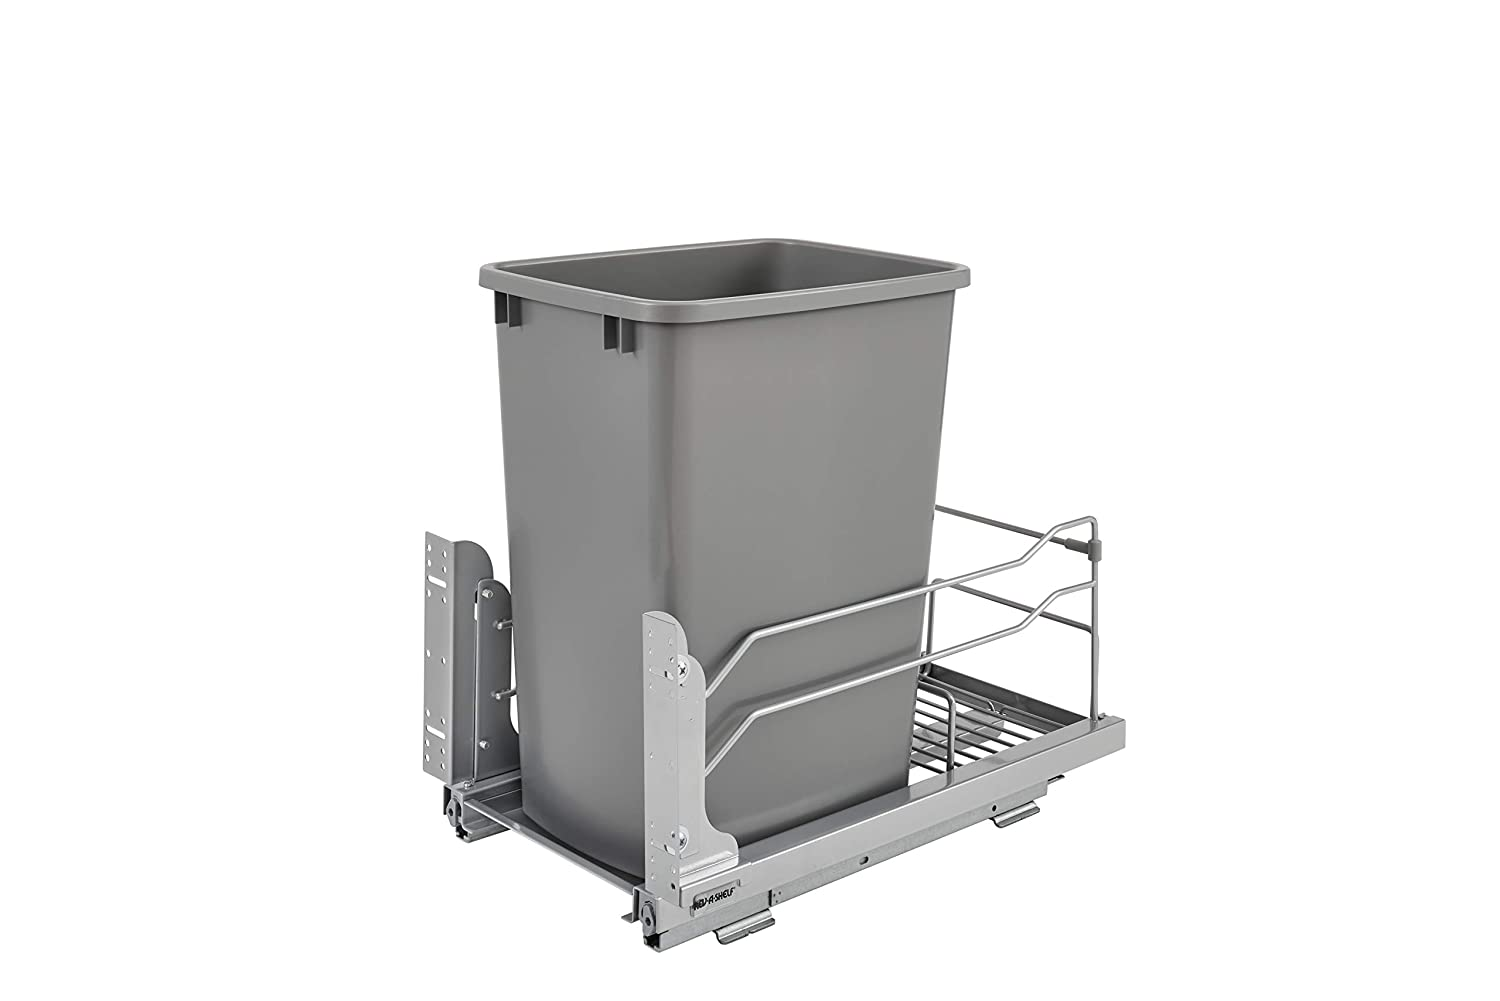 Rev-A-Shelf - 53WC-1535SCDM-117 - Single 35 Qt. Pull-Out Silver Waste Container with Soft-Close Slides